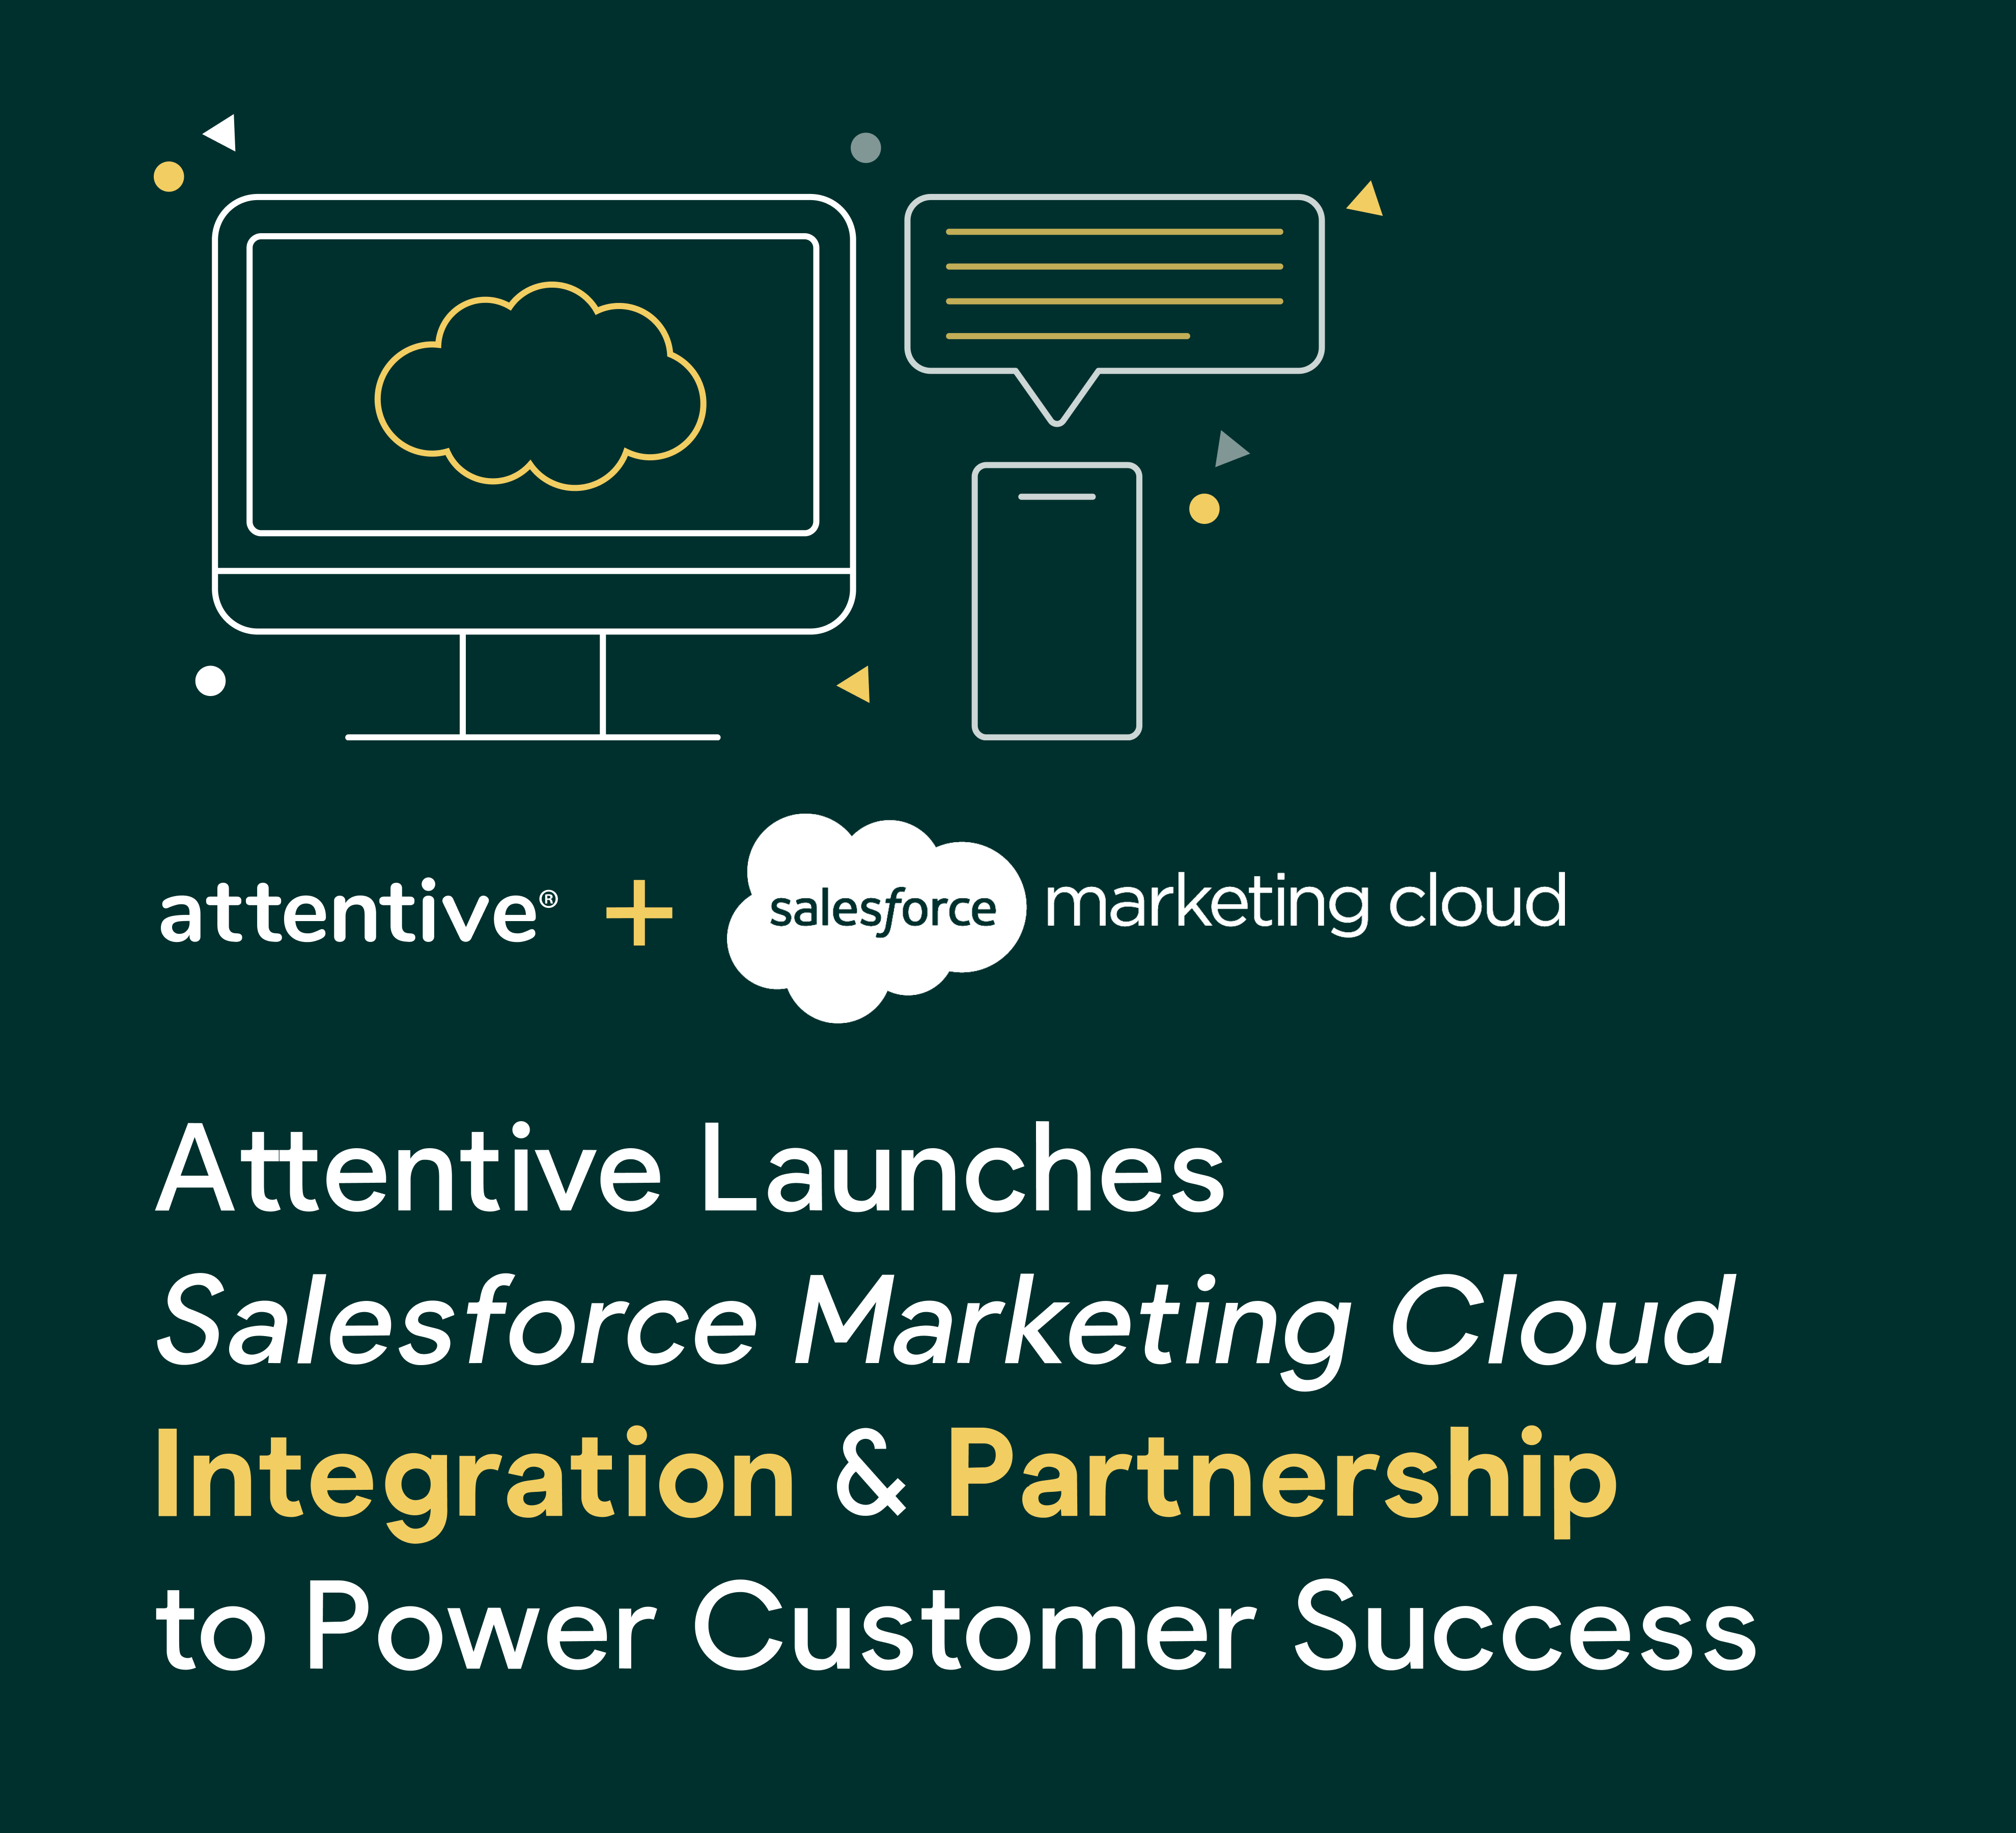 Attentive and salesforce integration